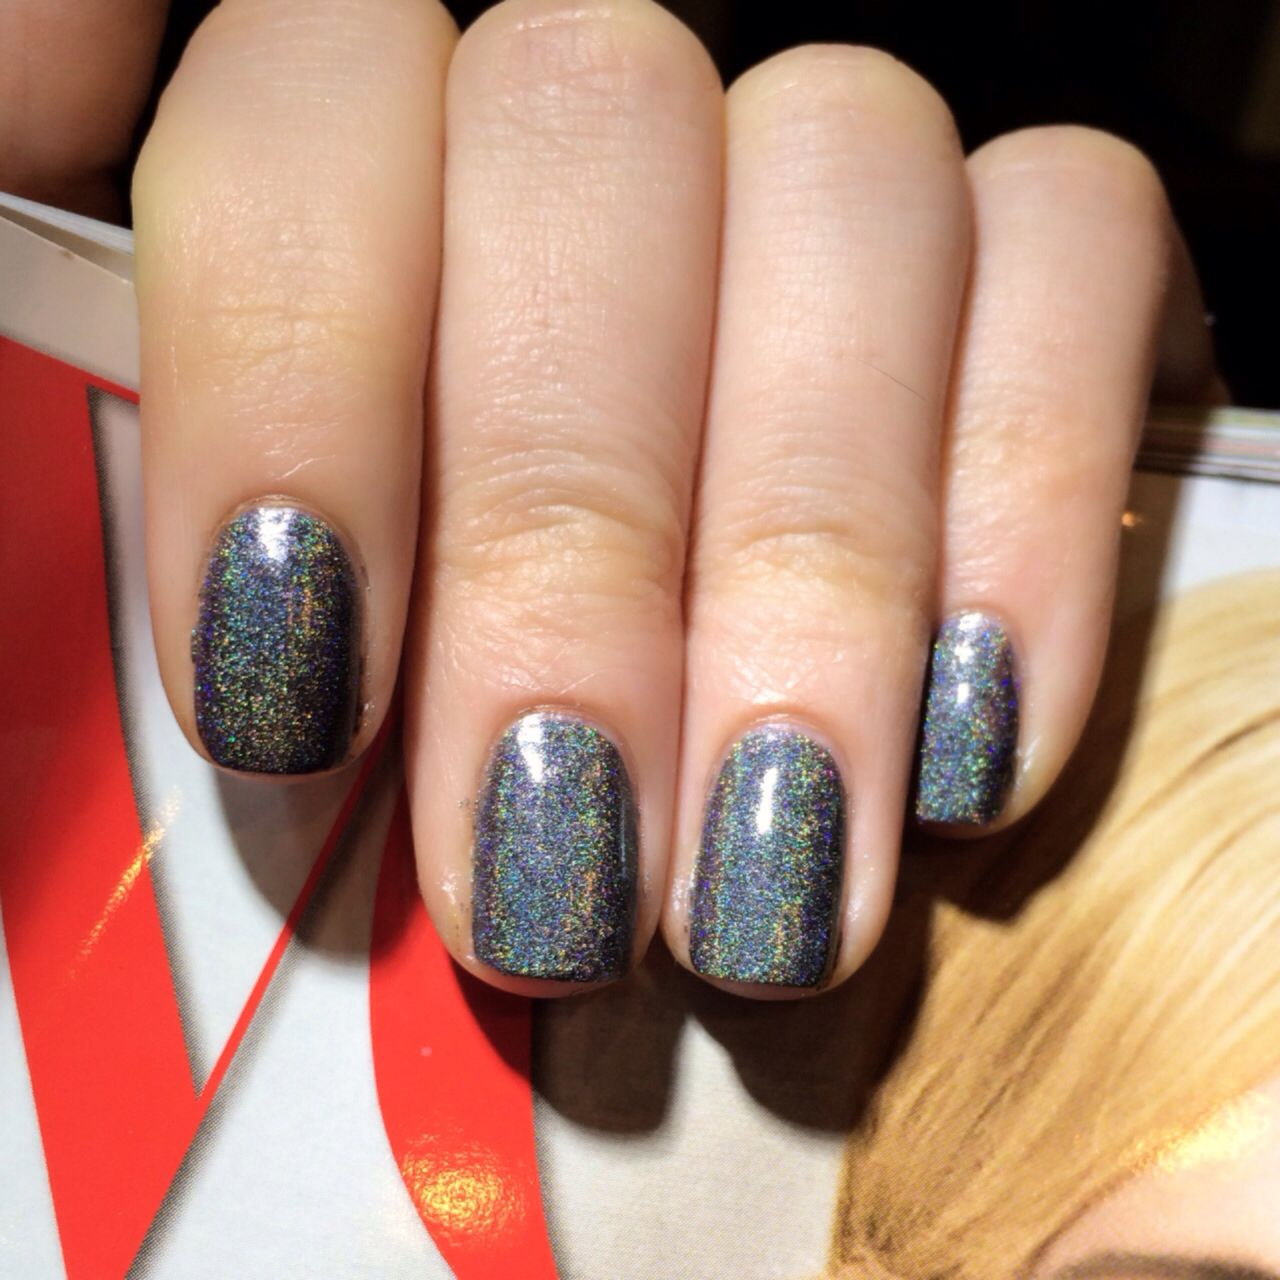 NCLA Holographic nail polish in : From LA To Anywhere www.shopncla ...